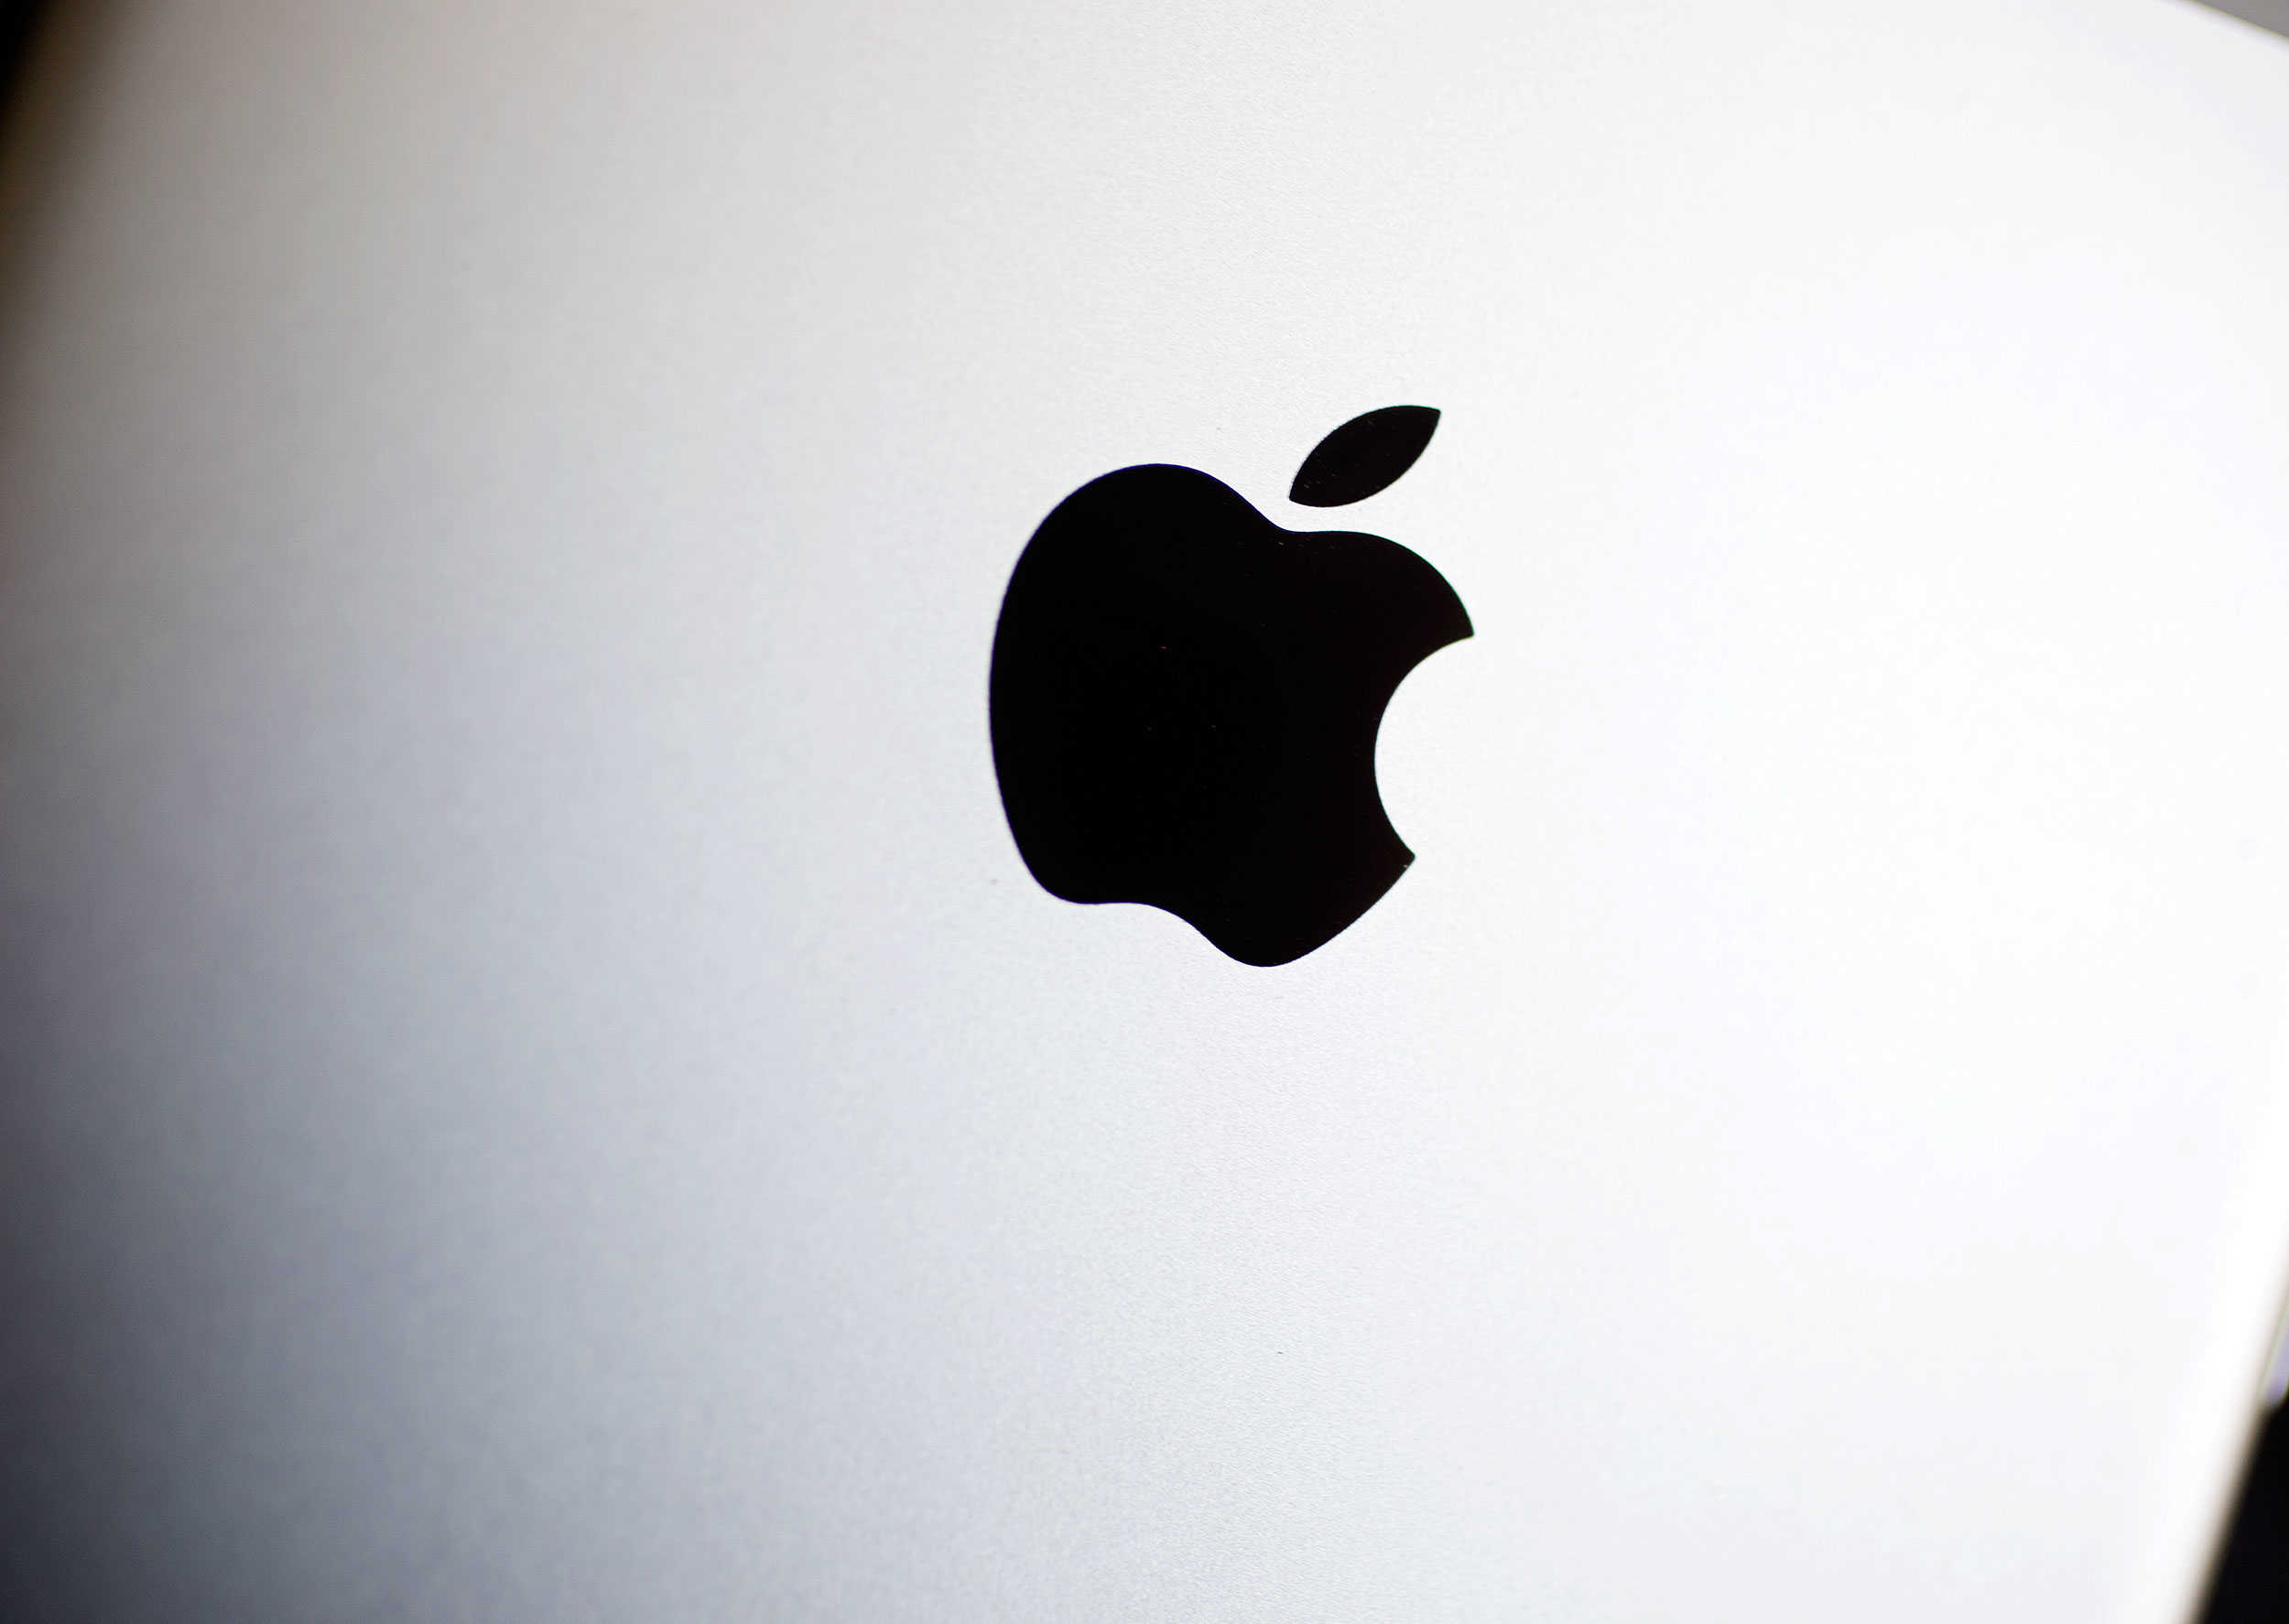 Should Apple cave when it comes to encryption?